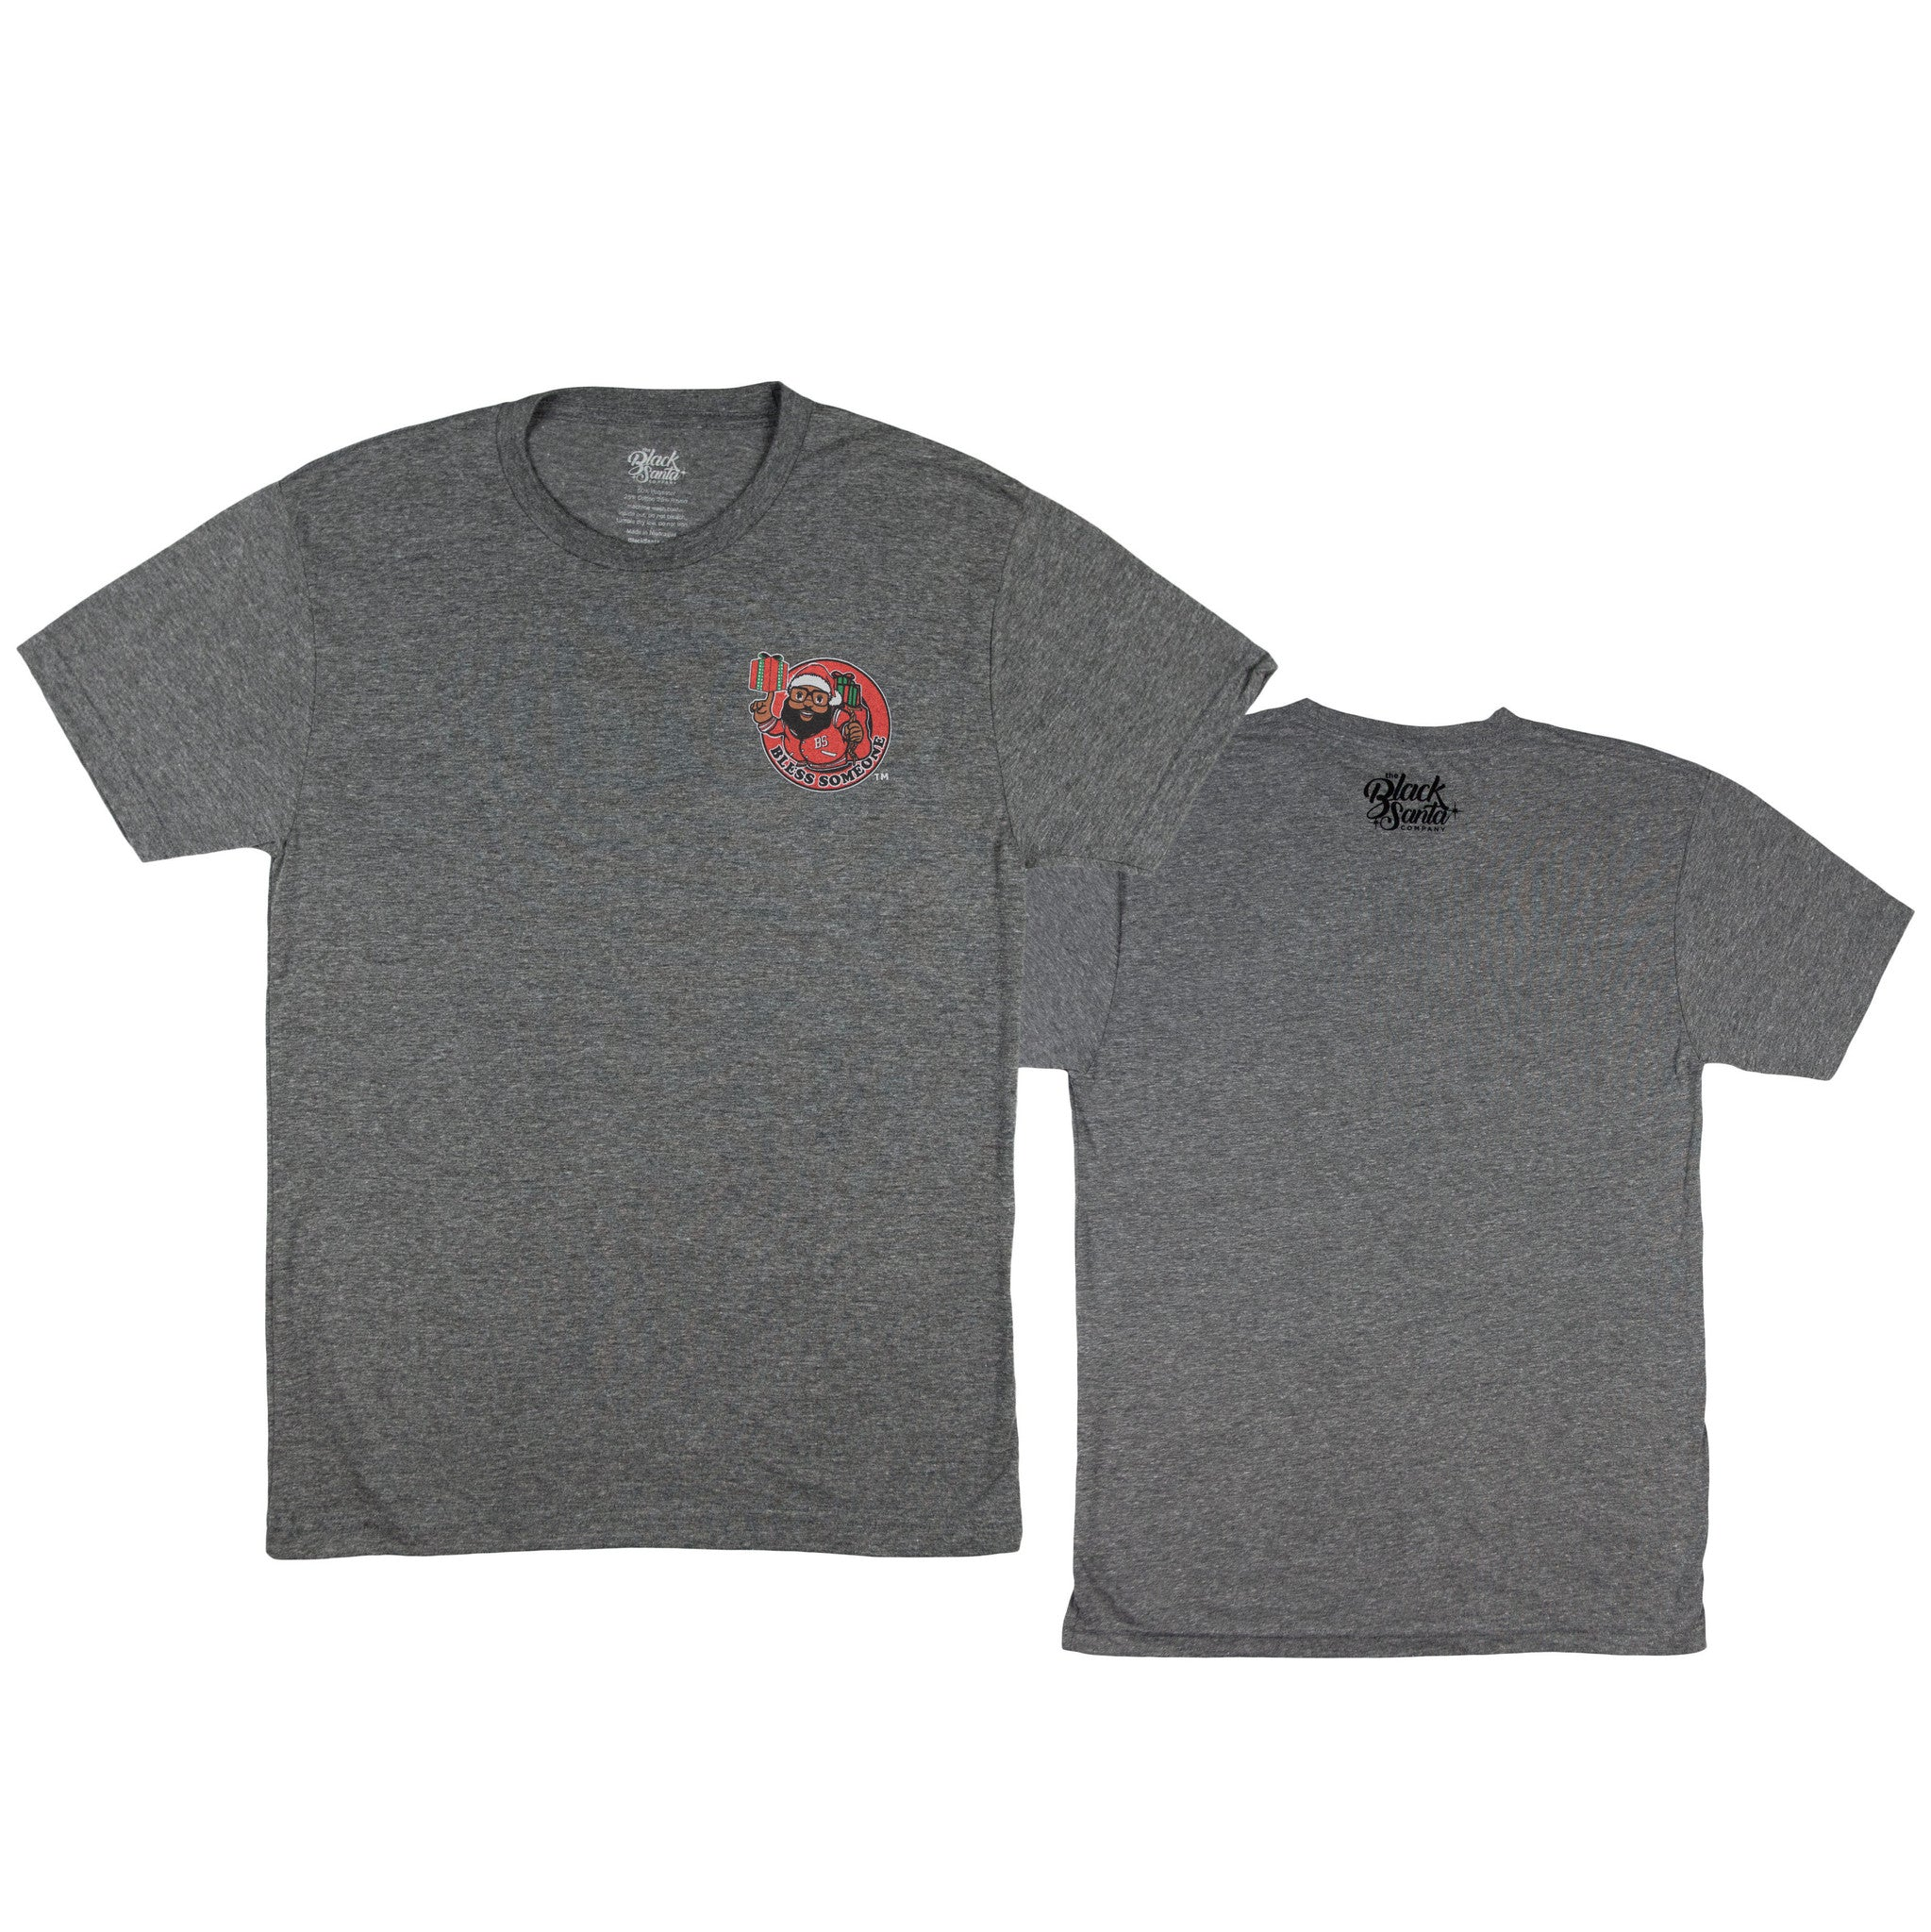 Black Santa Bless Circle Tee - Heather Gray